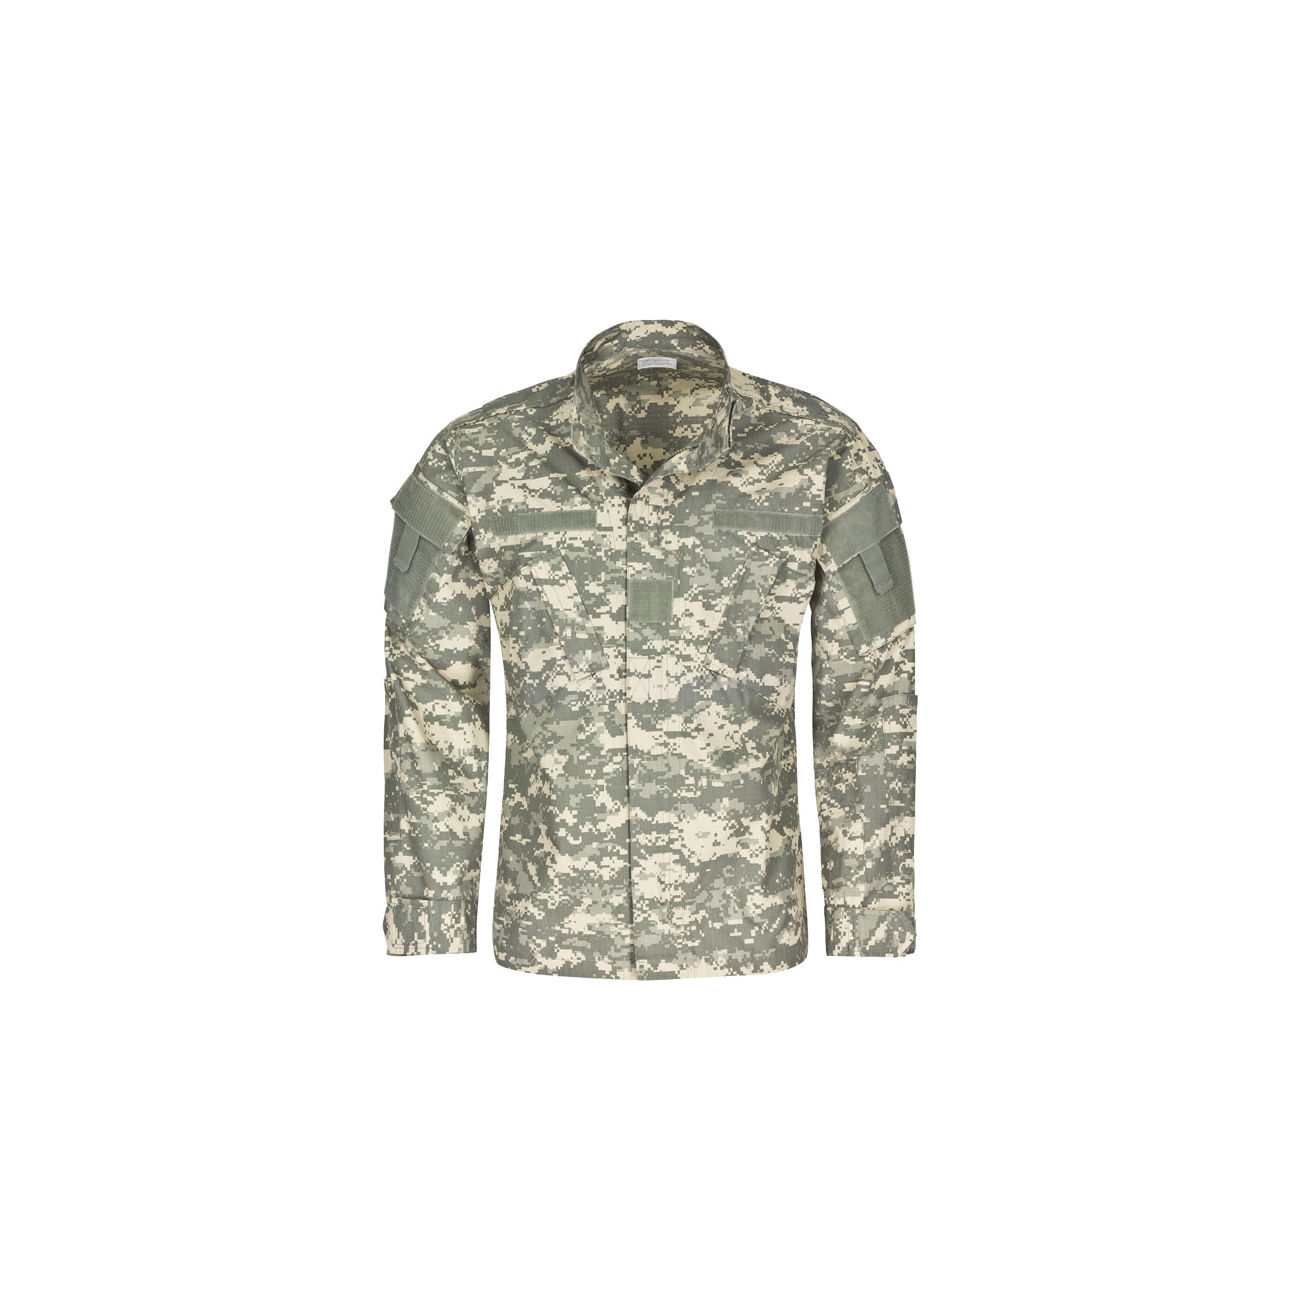 Mil-Tec ACU Feldjacke, AT-digital 0